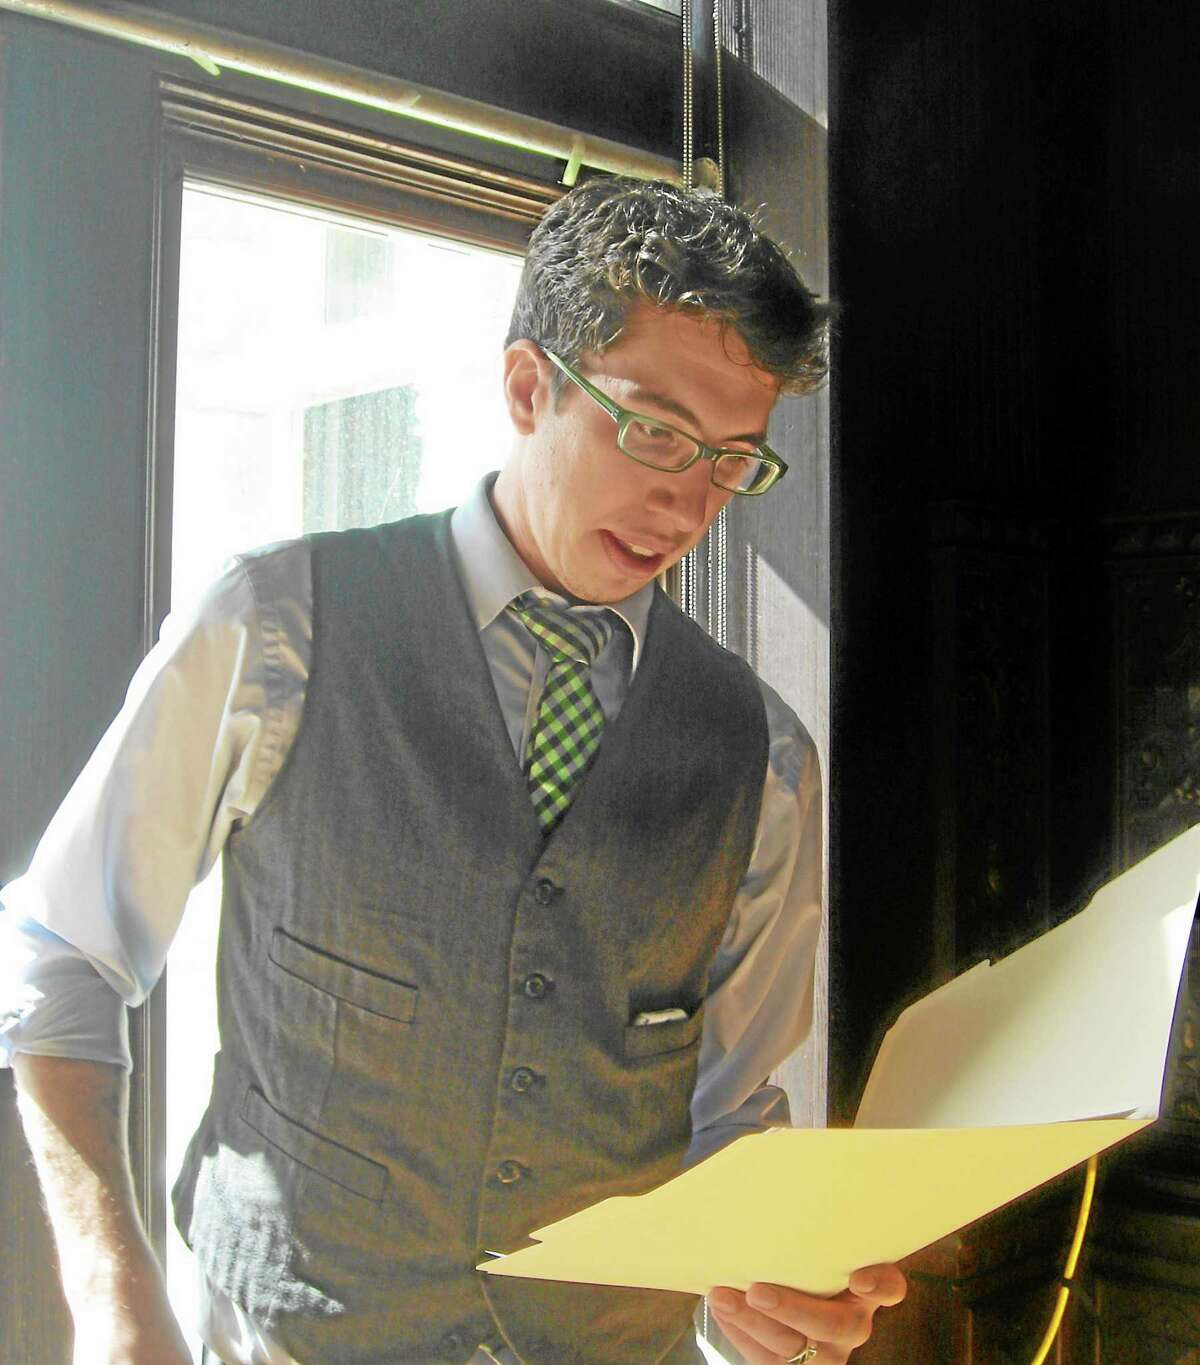 """Former Durham resident Colin Halloran, who now lives in Boston, recently launched his own independent publishing company, Martlet & Mare Books, to help give outstanding authors a venue in which to share their work. Halloran is overseeing the Sept. 17 release of Fairfield resident Alena Dillon's book, """"I Thought We Agreed To Pee In The Ocean: And Other Amusings From A Girl Wearing Sweatpants."""""""